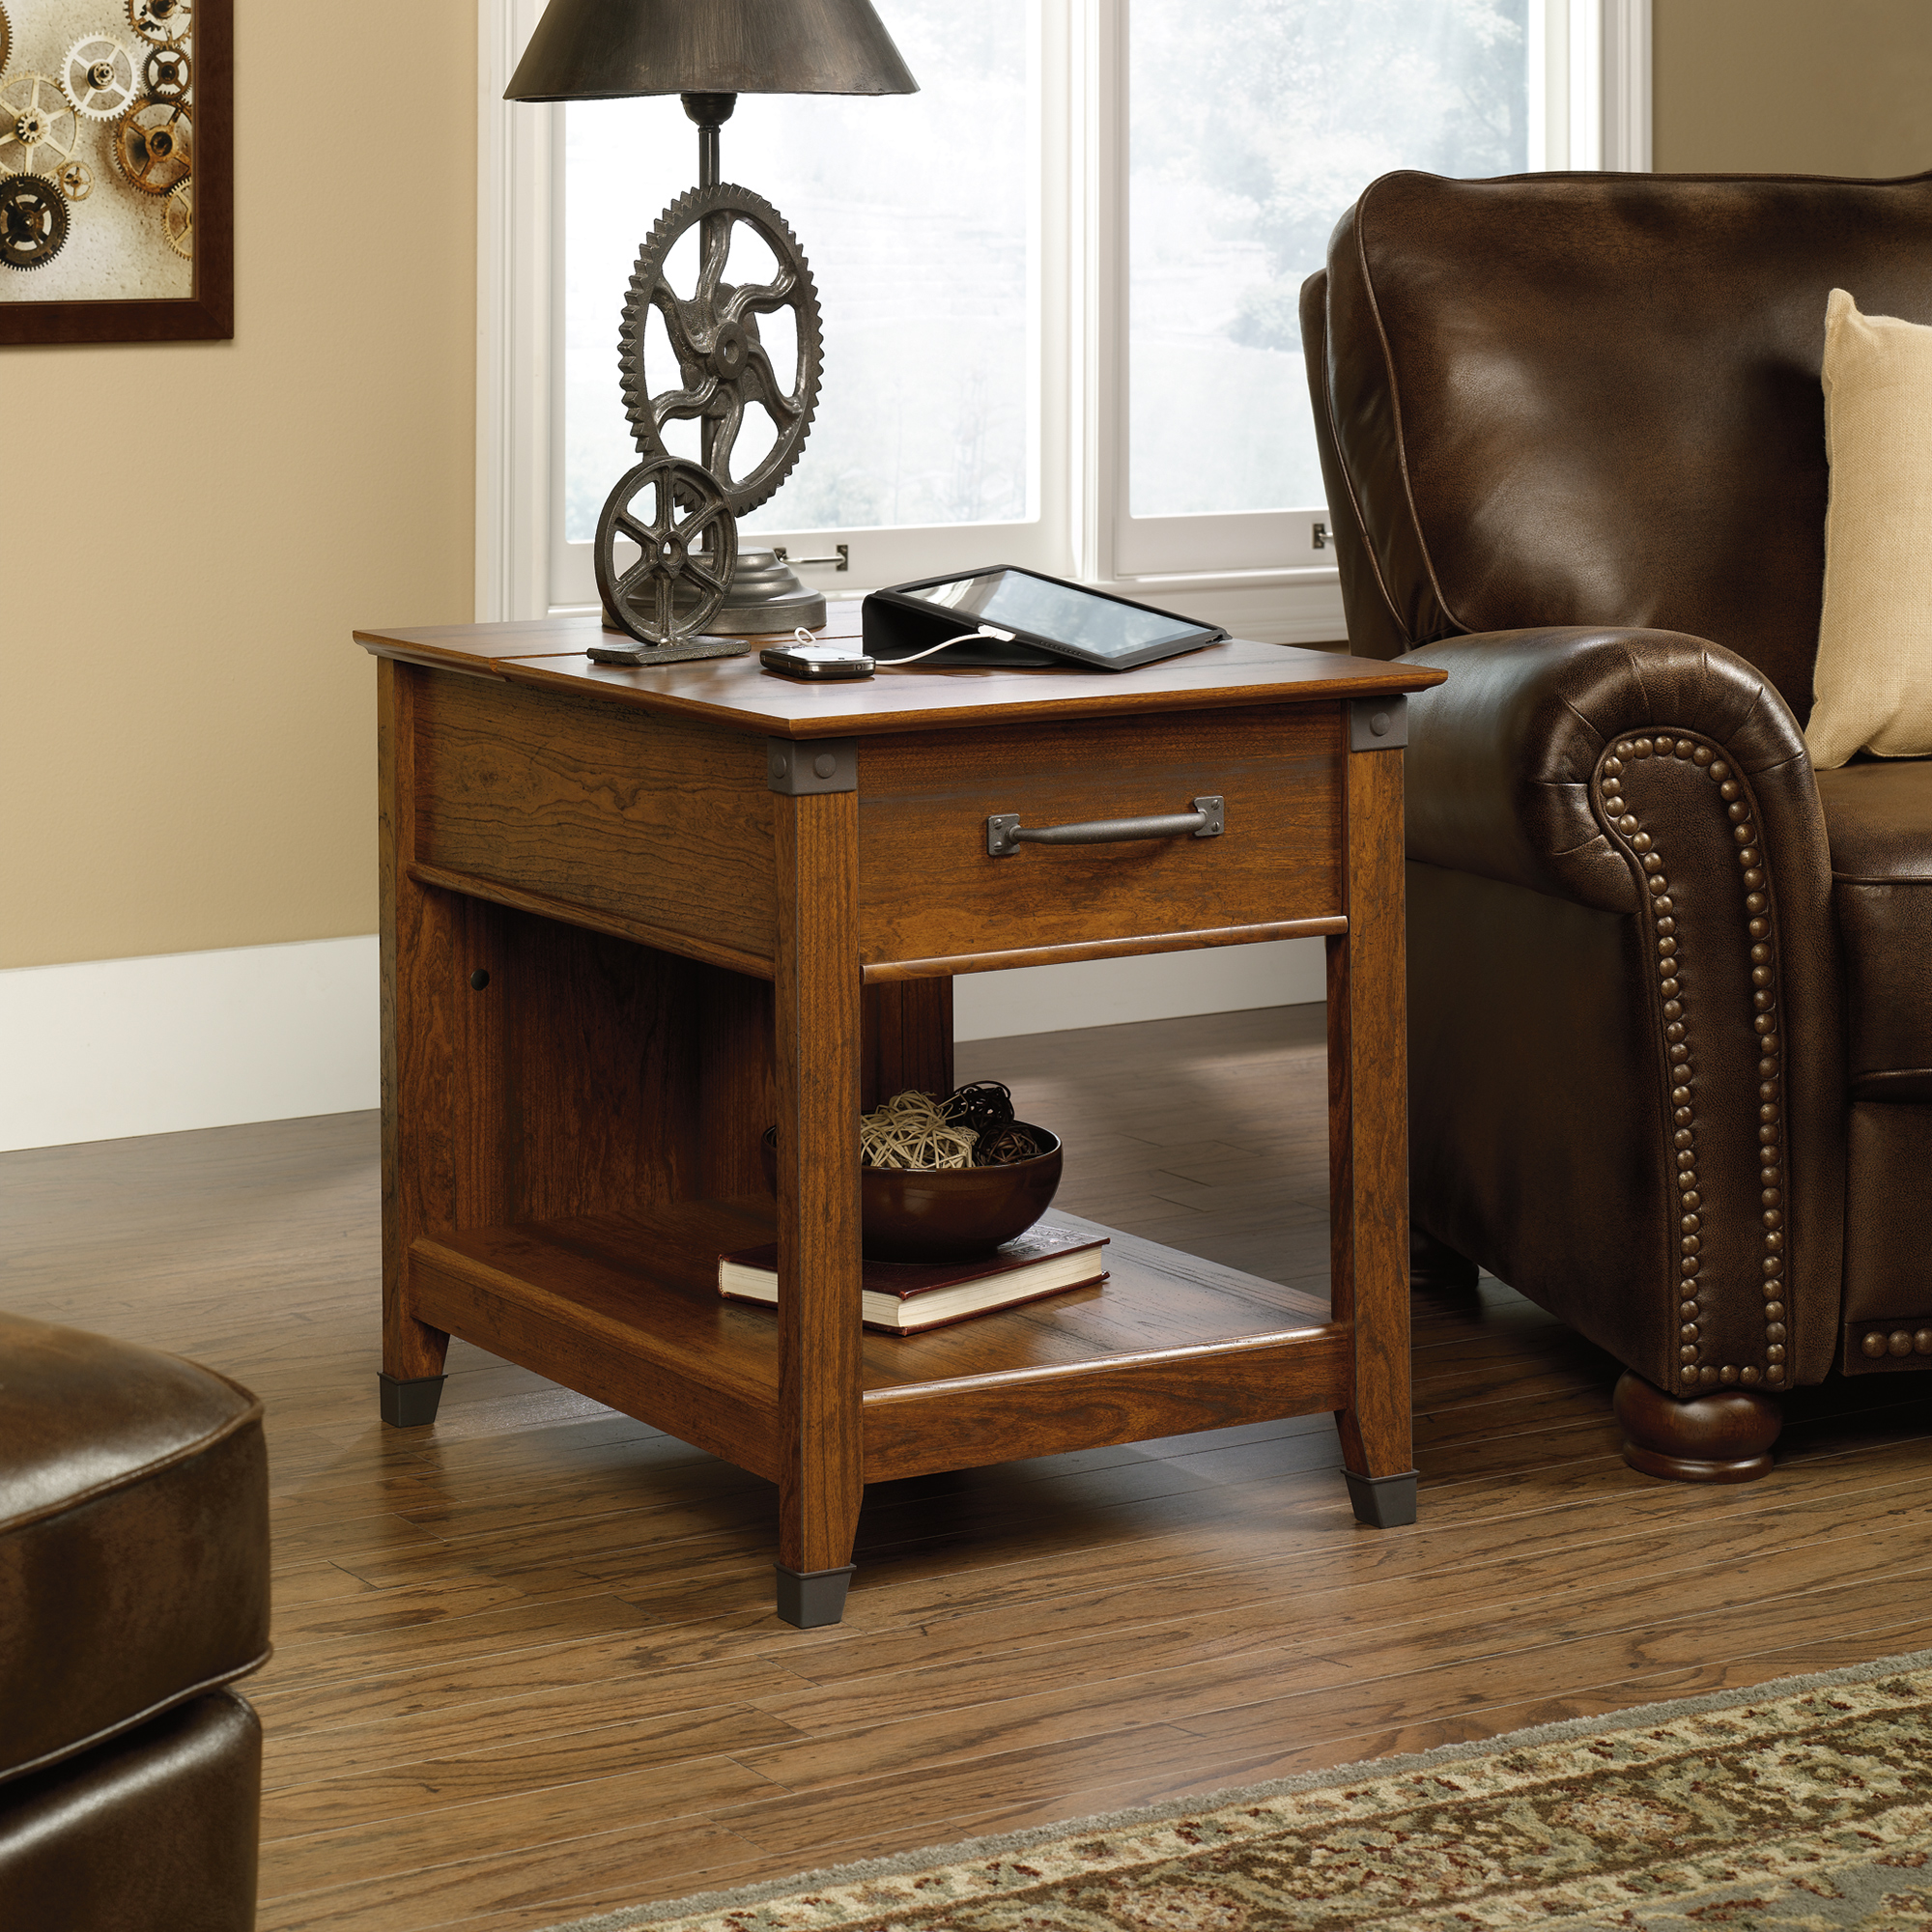 sauder carson forge side table the furniture milled cherry end brown wicker patio copper top coffee white piece set black solid wood nightstand unfinished ethan allen sacramento